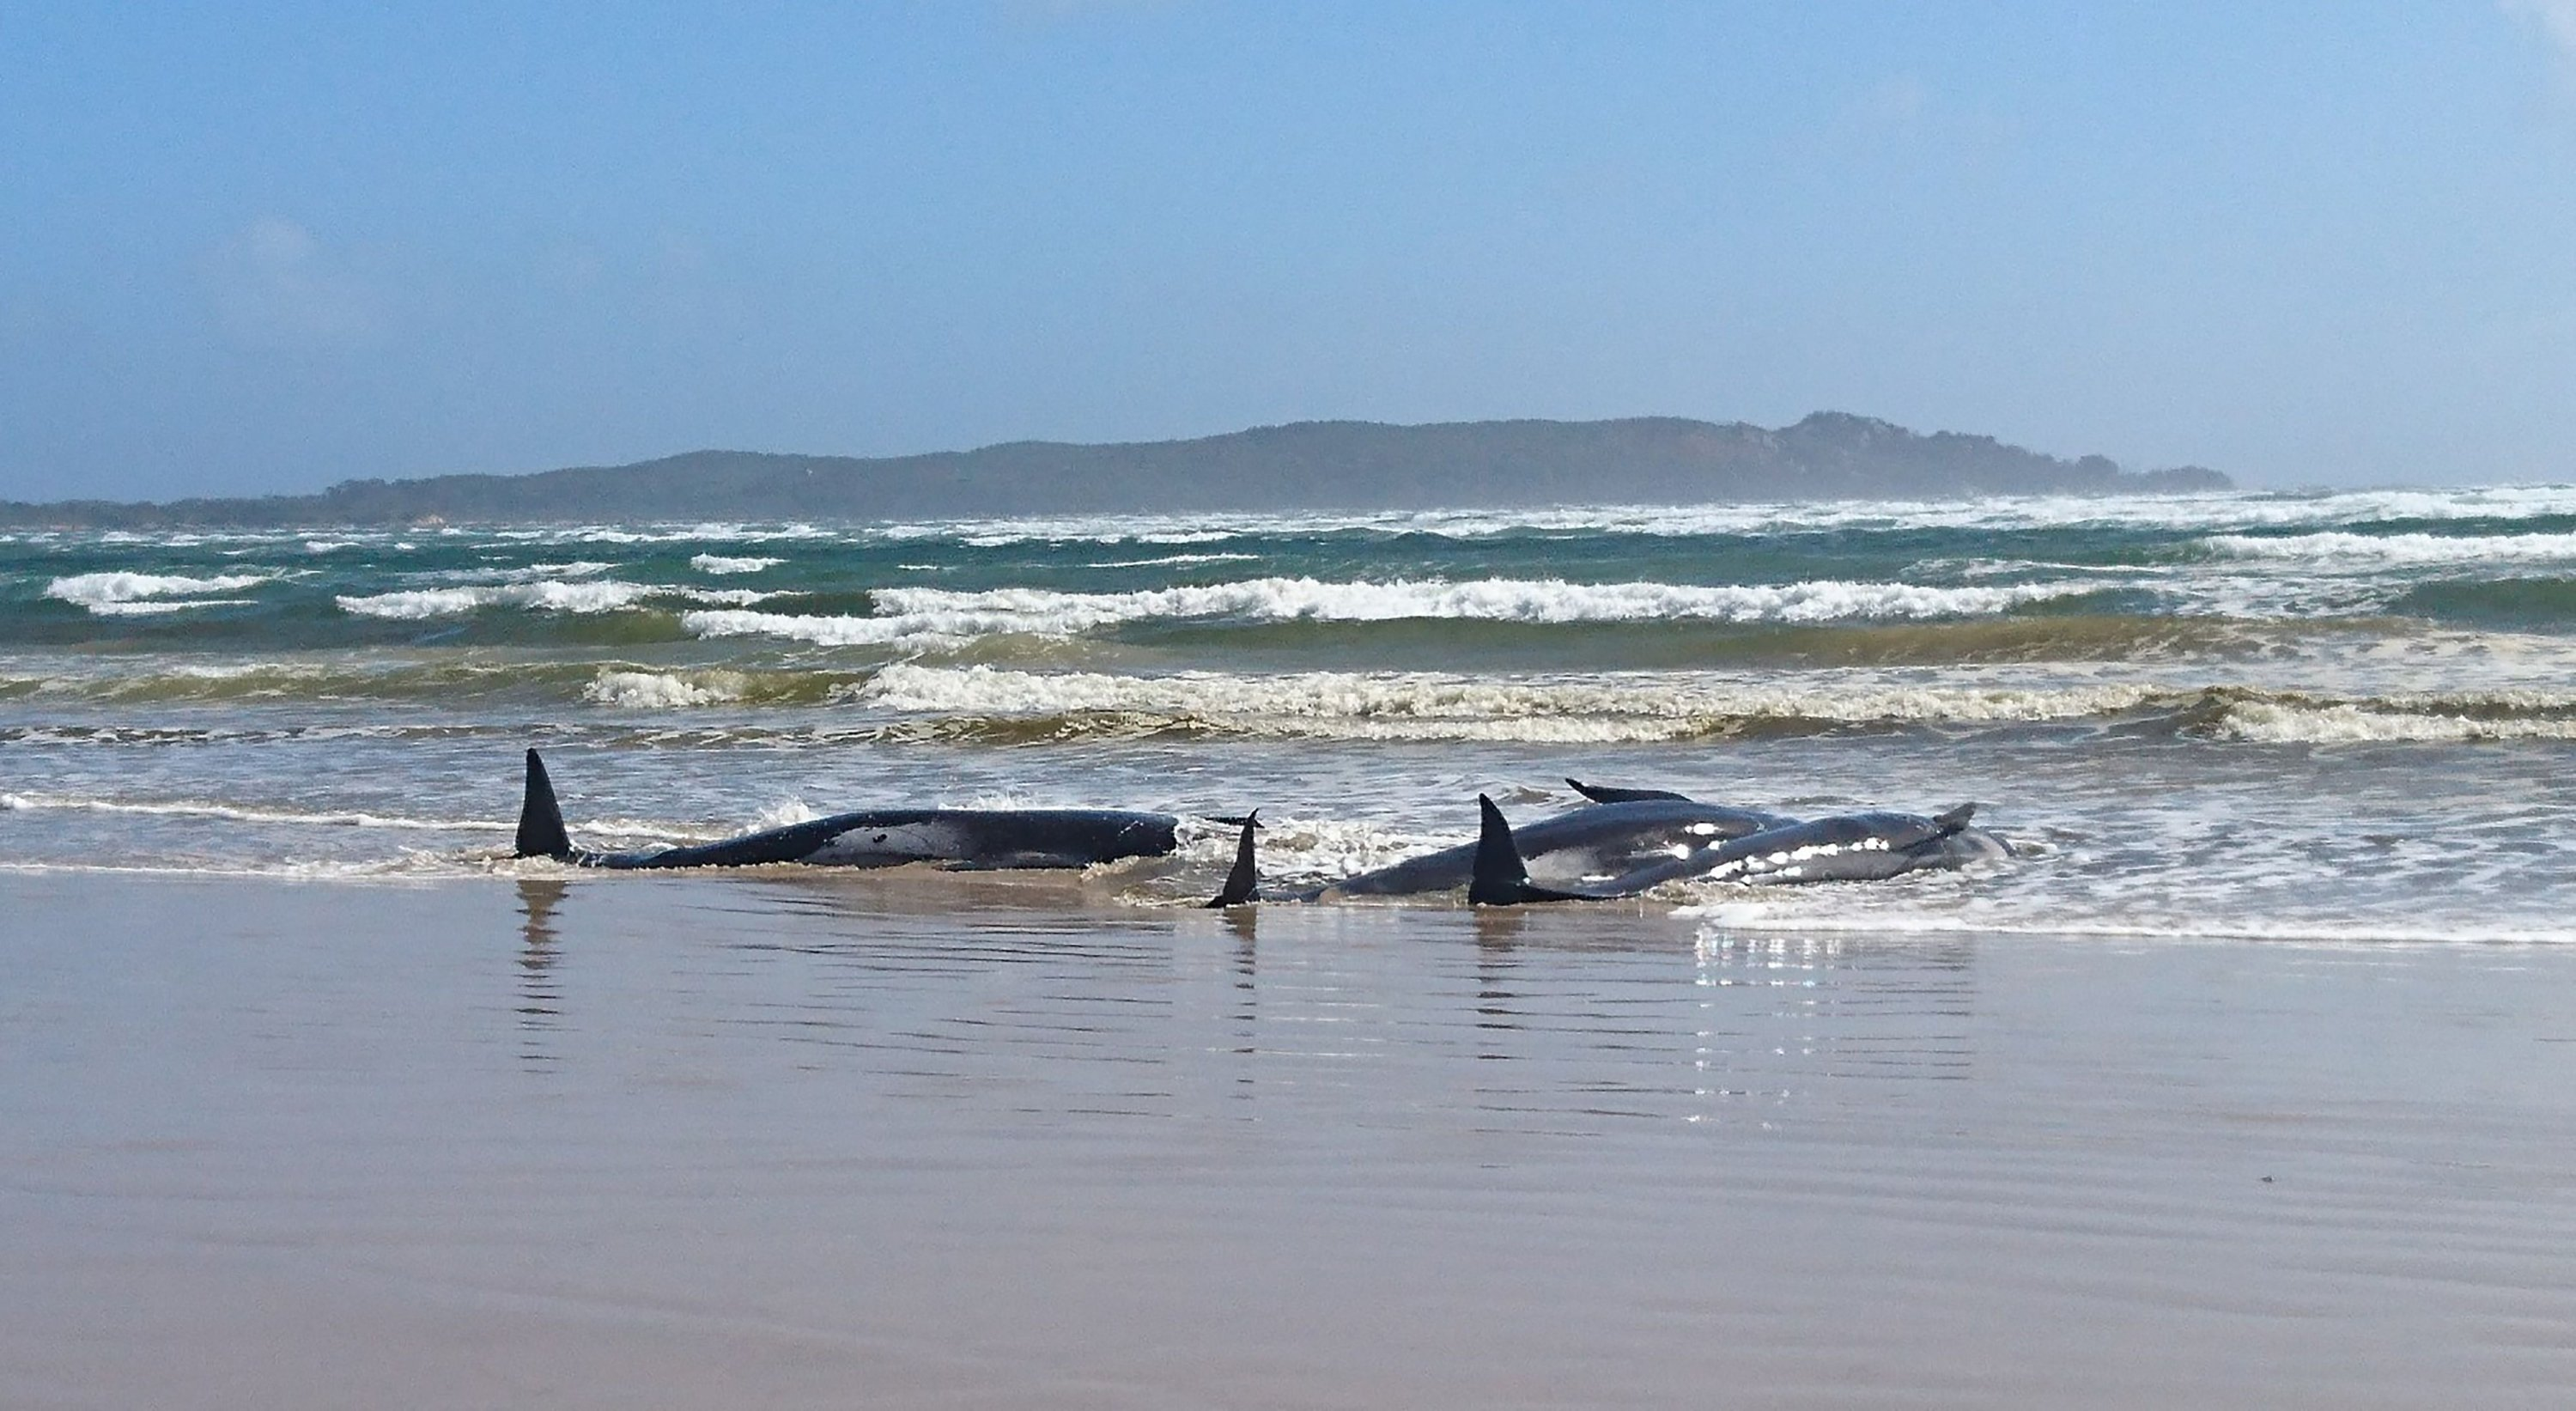 Around 270 whales stranded on a sandbar off Tasmania